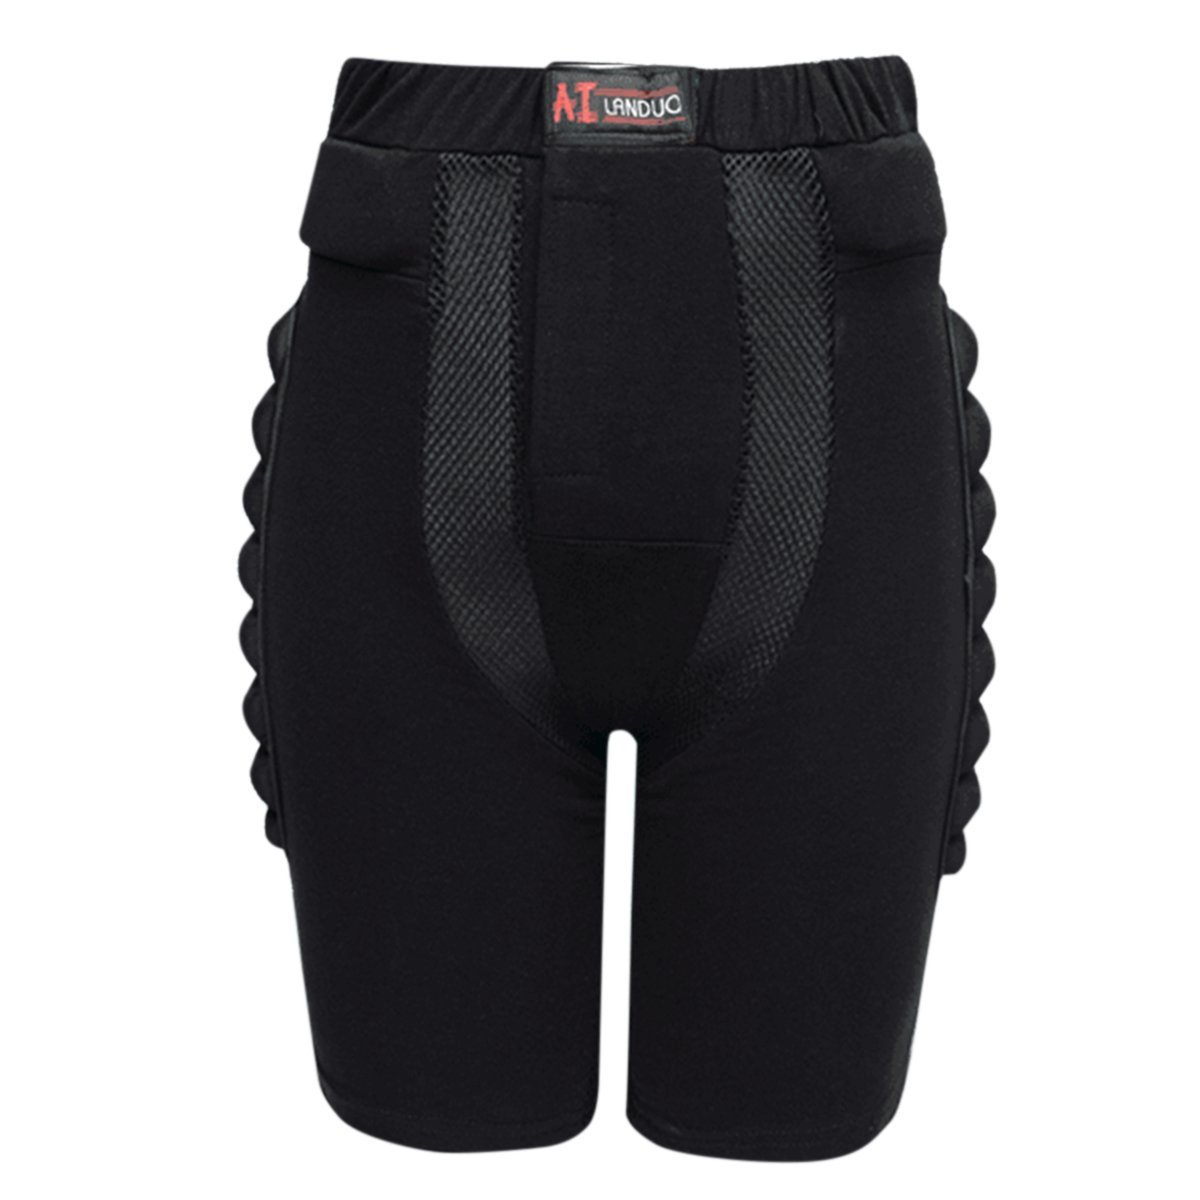 Haseil Hip and Butt Pad Eva Protective Drop Resistance Gear Roller Padded Shorts